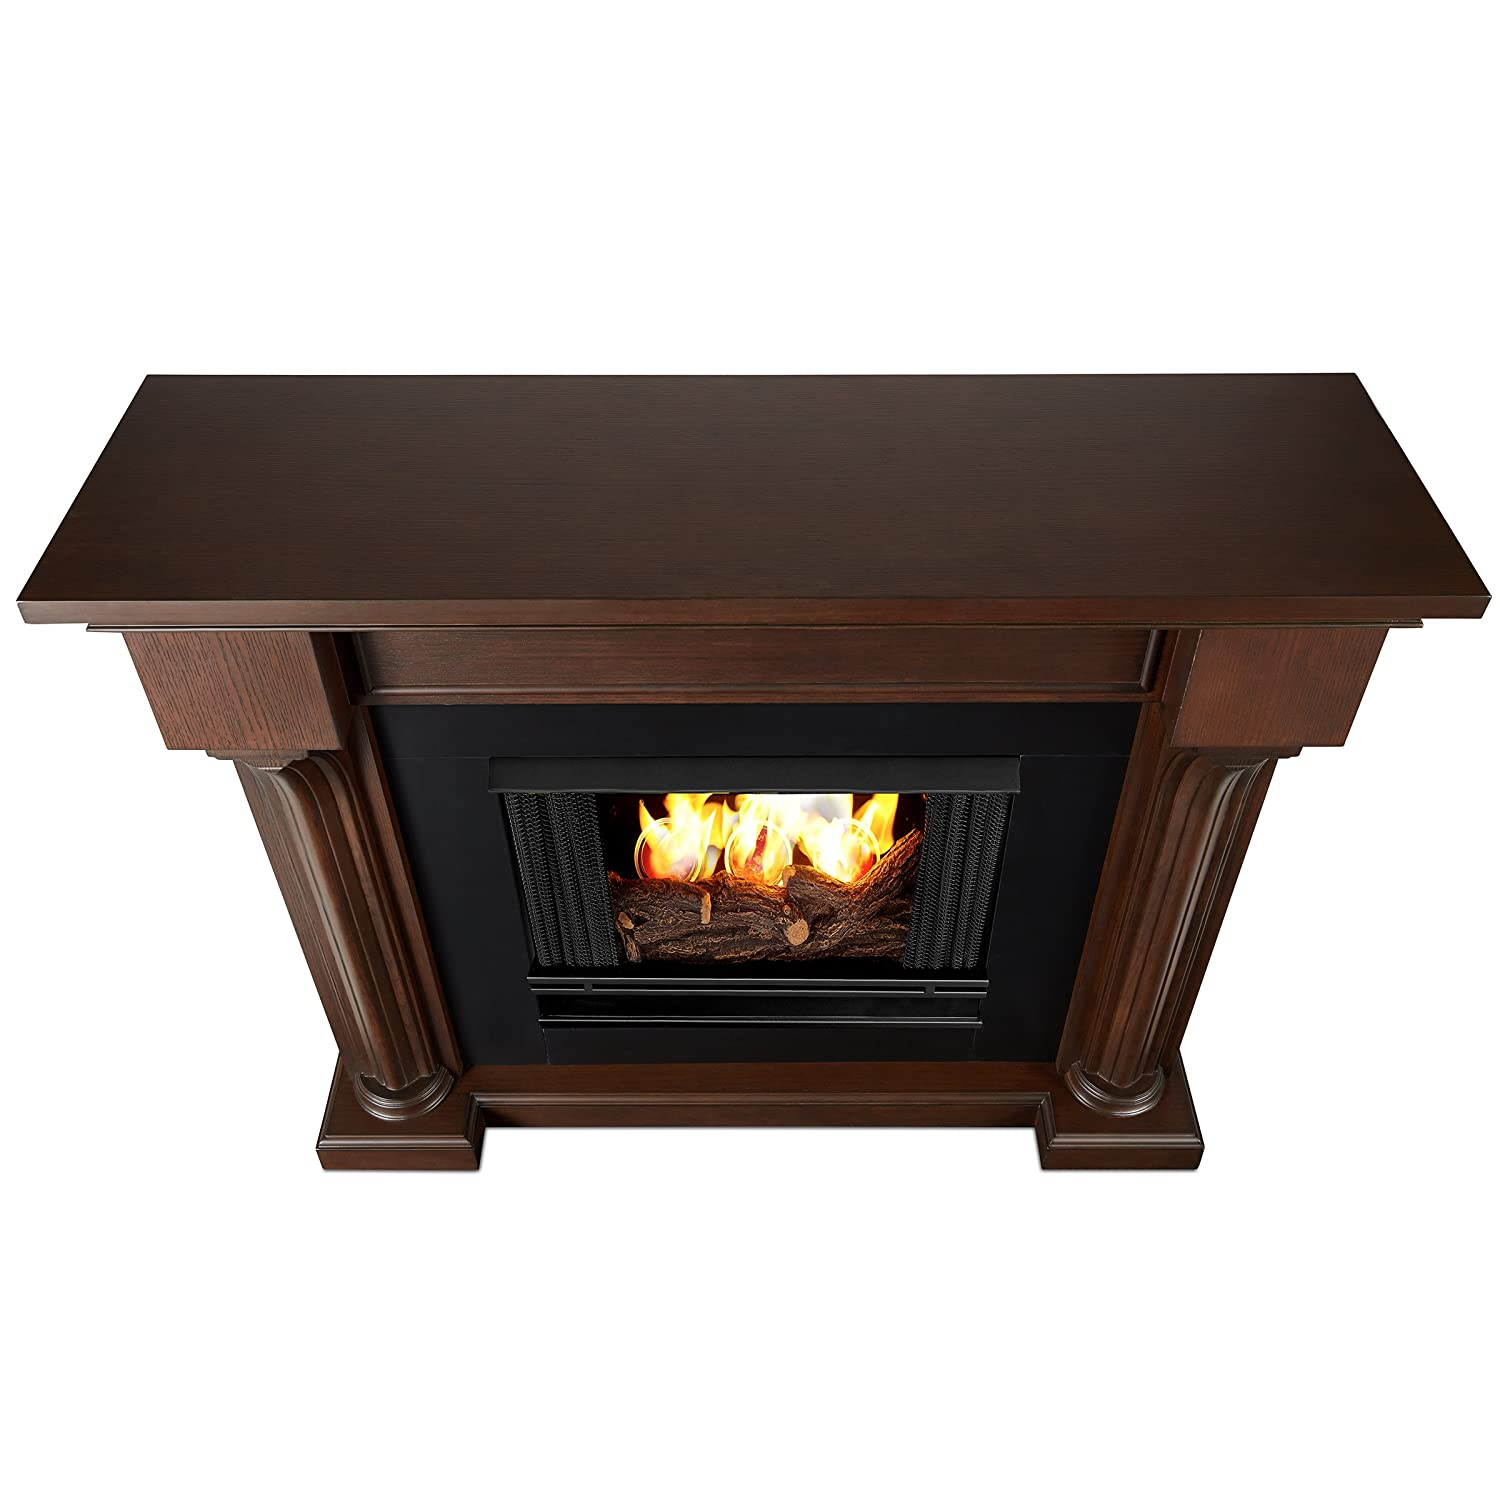 Amazoncom Real Flame CO Verona Ventless Gel Fireplace In - Ashley gel fireplace fuel